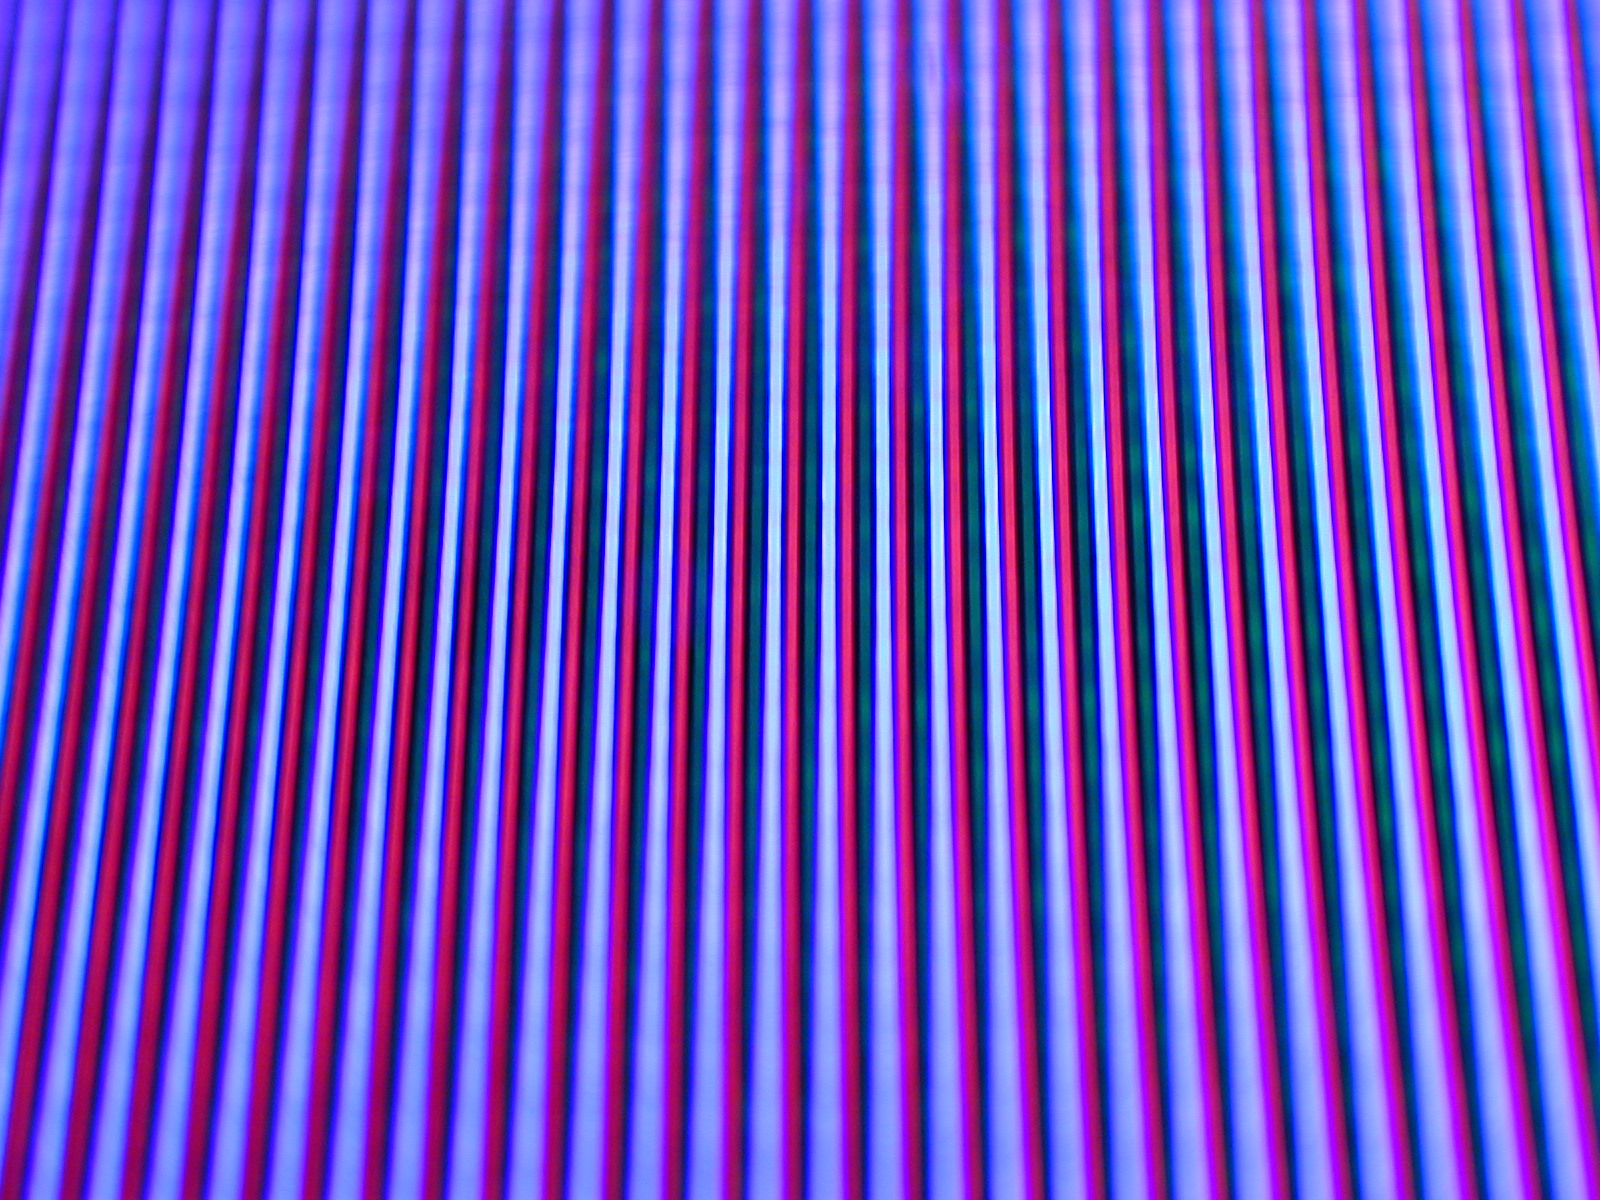 lines of RGB colour on a CRT screen viewed with a macro lens